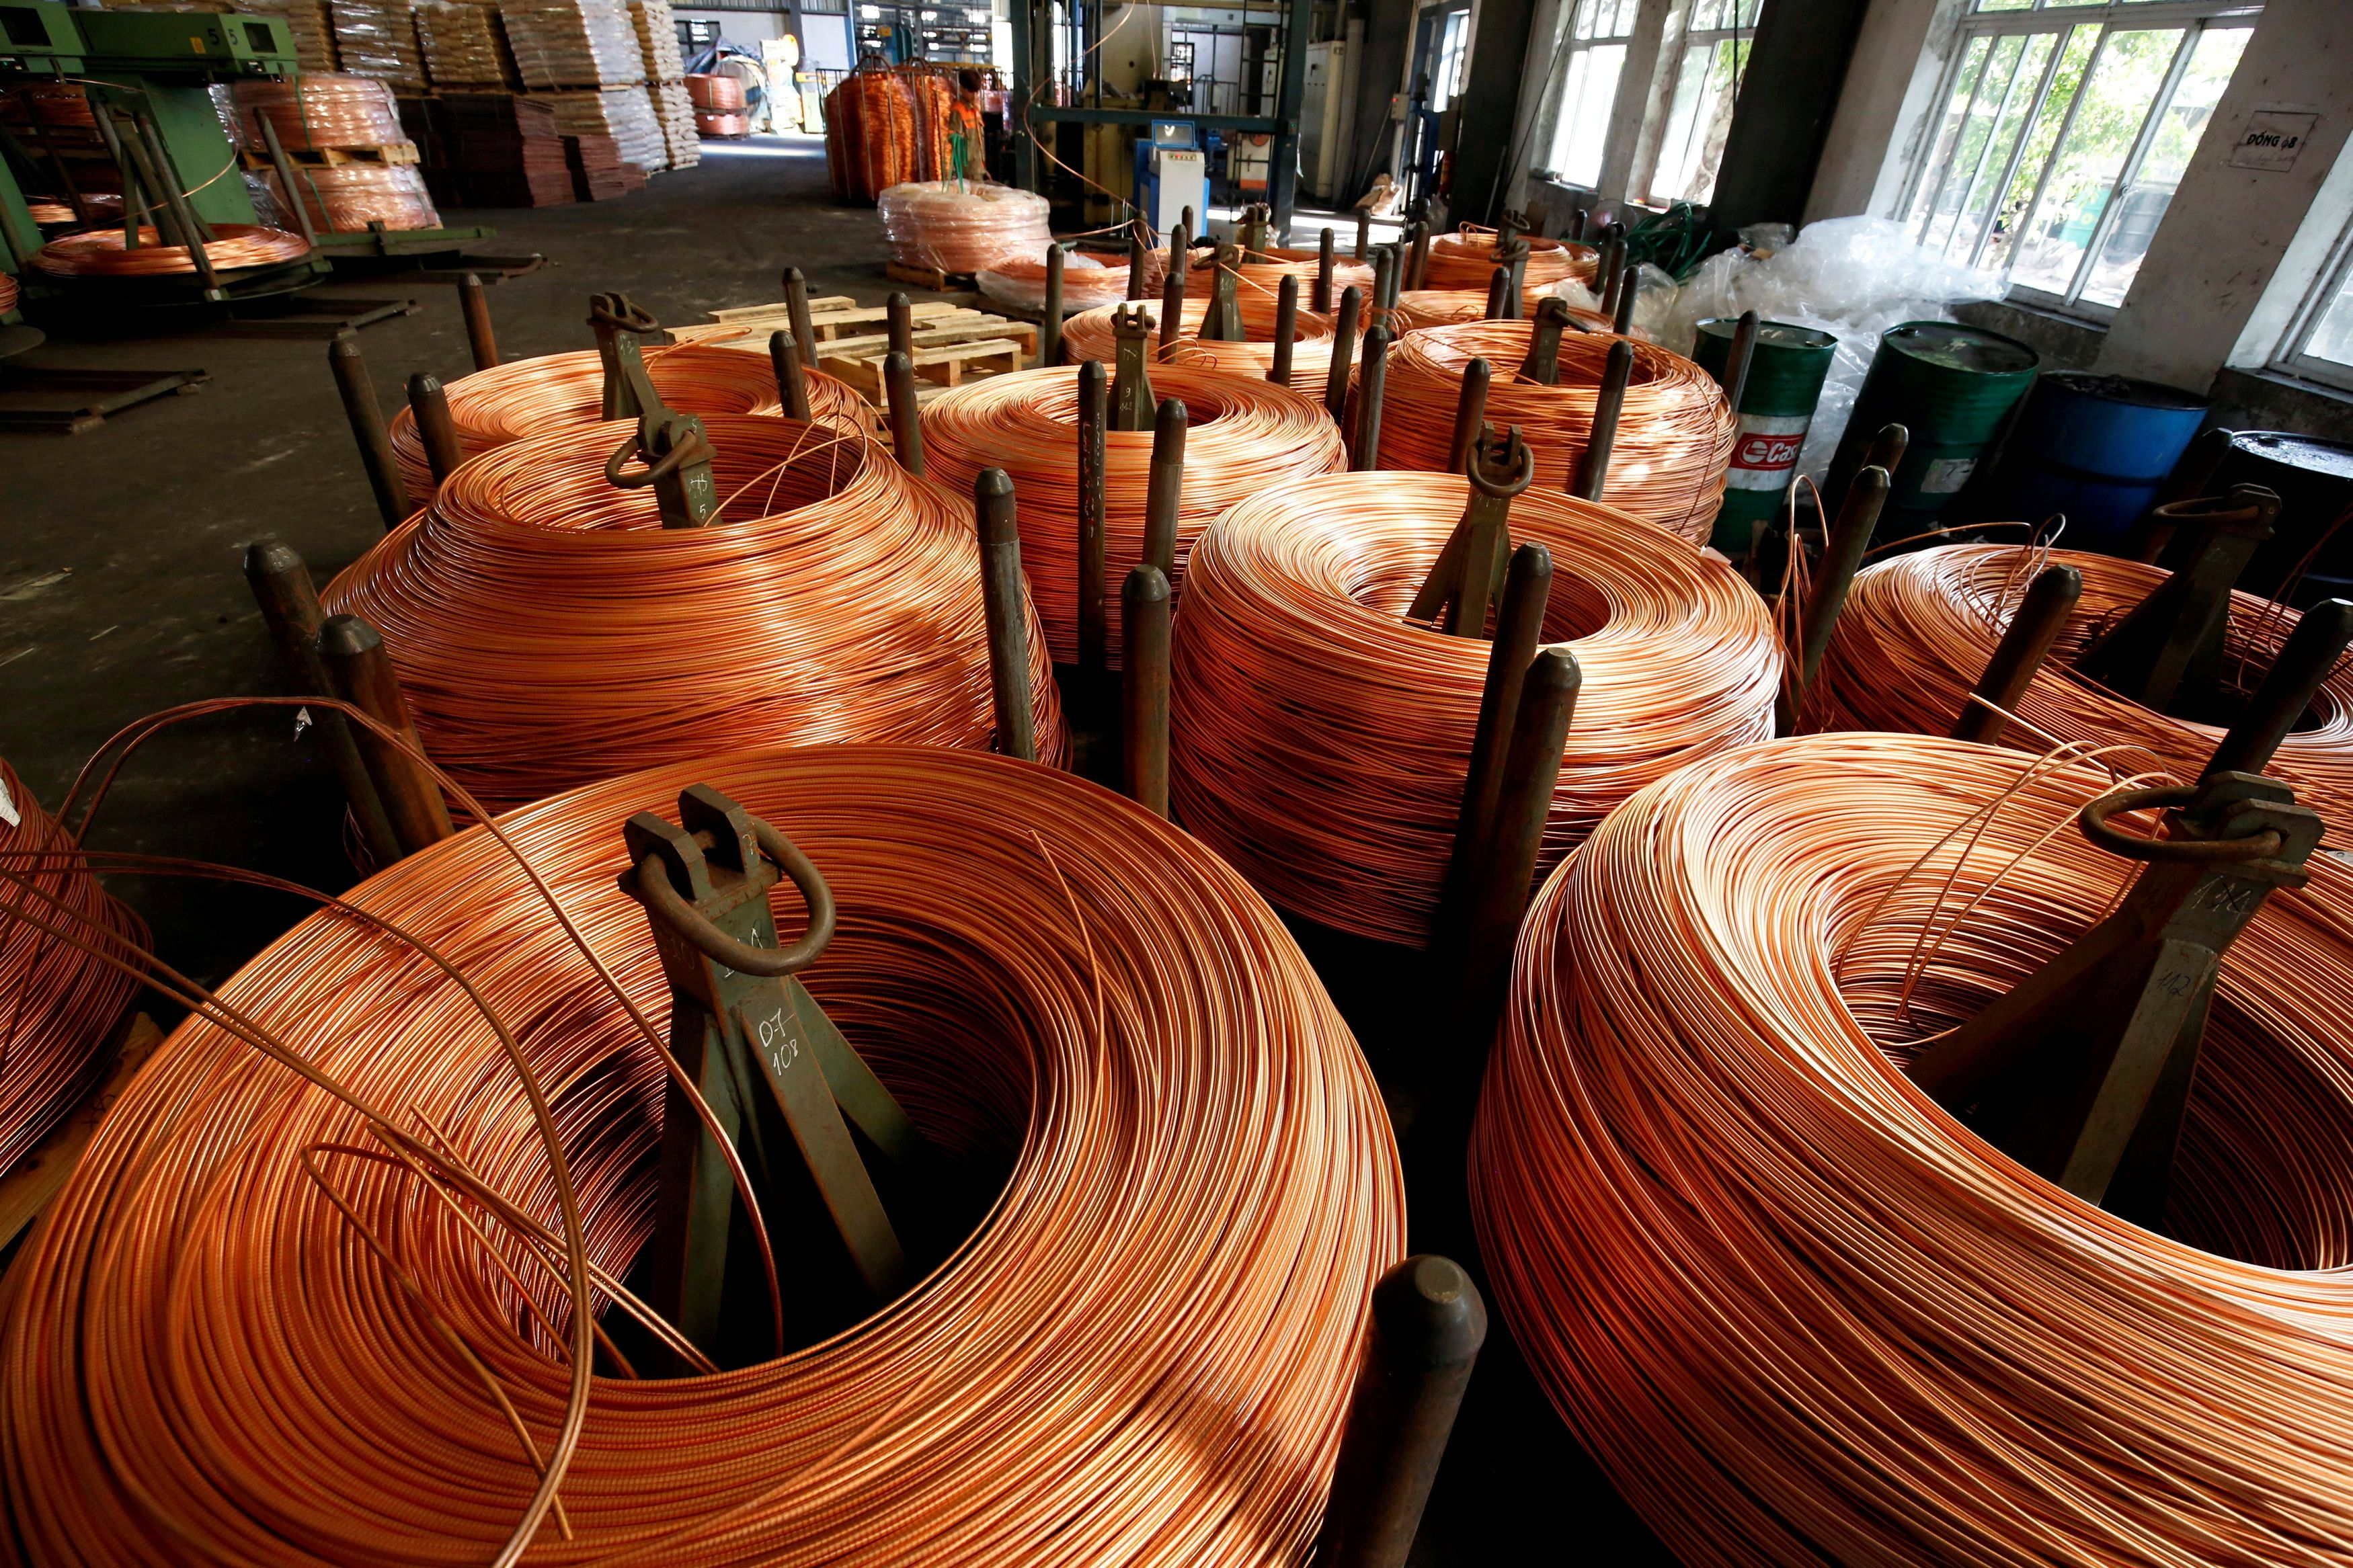 Copper rods are seen at Truong Phu cable factory in northern Hai Duong province, outside Hanoi, Vietnam, August 11, 2017. REUTERS/Kham/File Photo